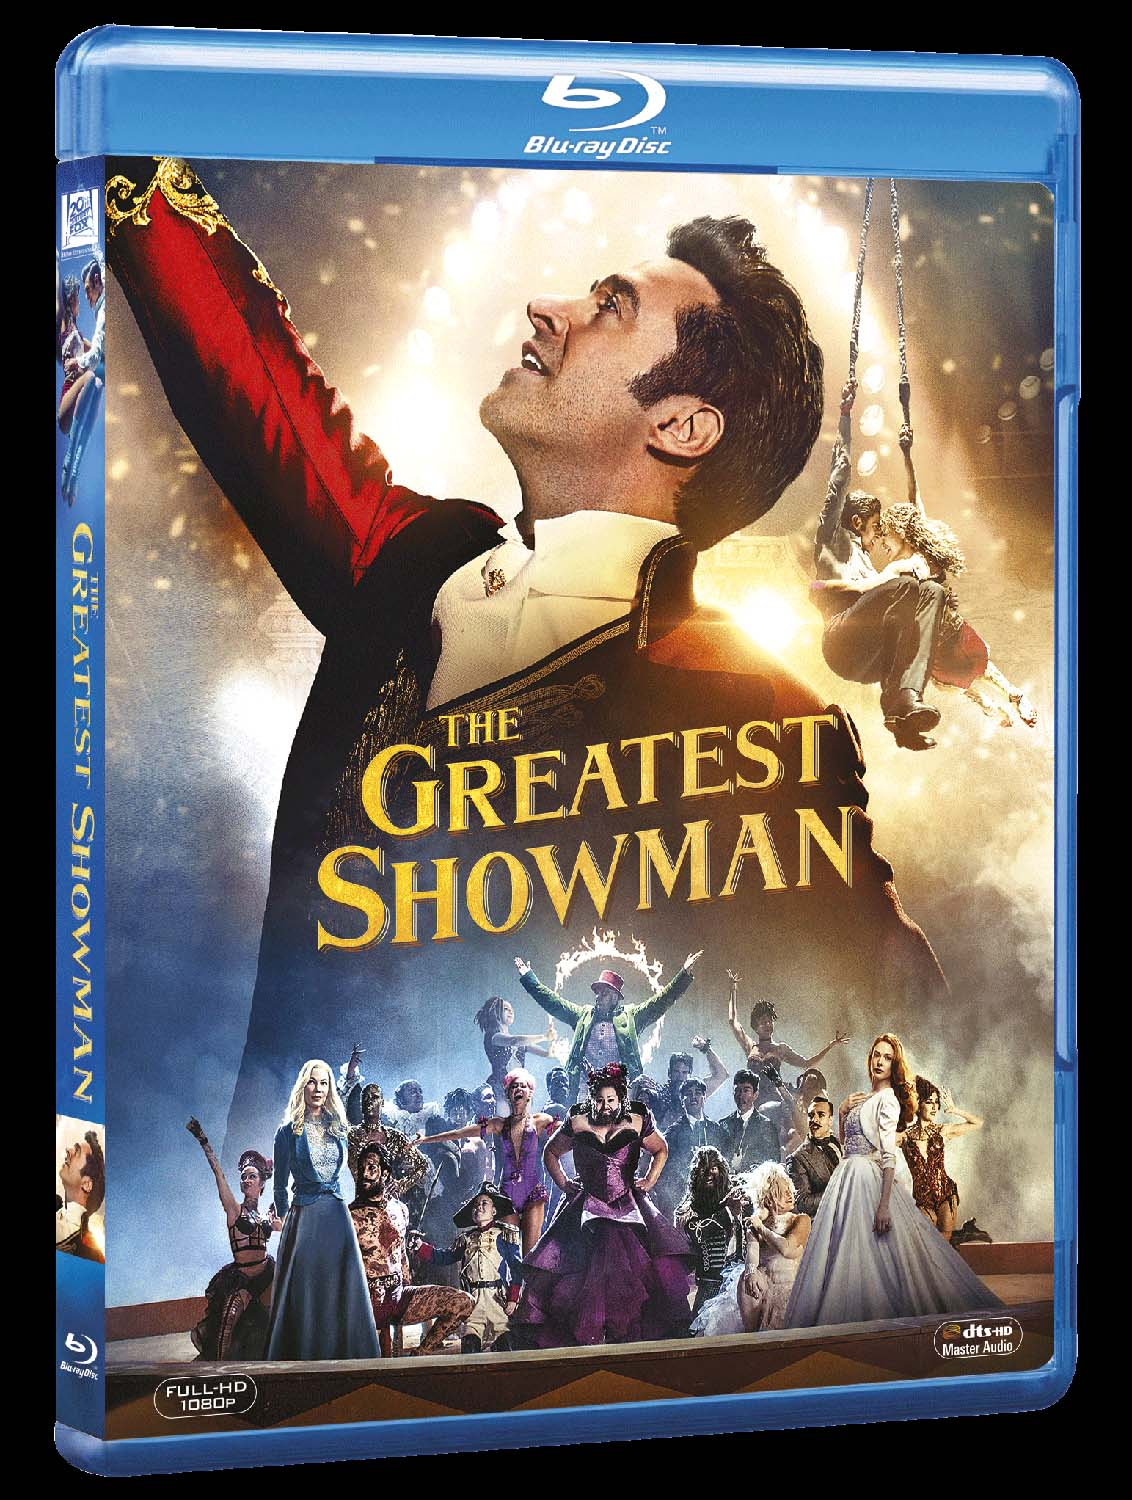 THE GREATEST SHOWMAN - BLU RAY